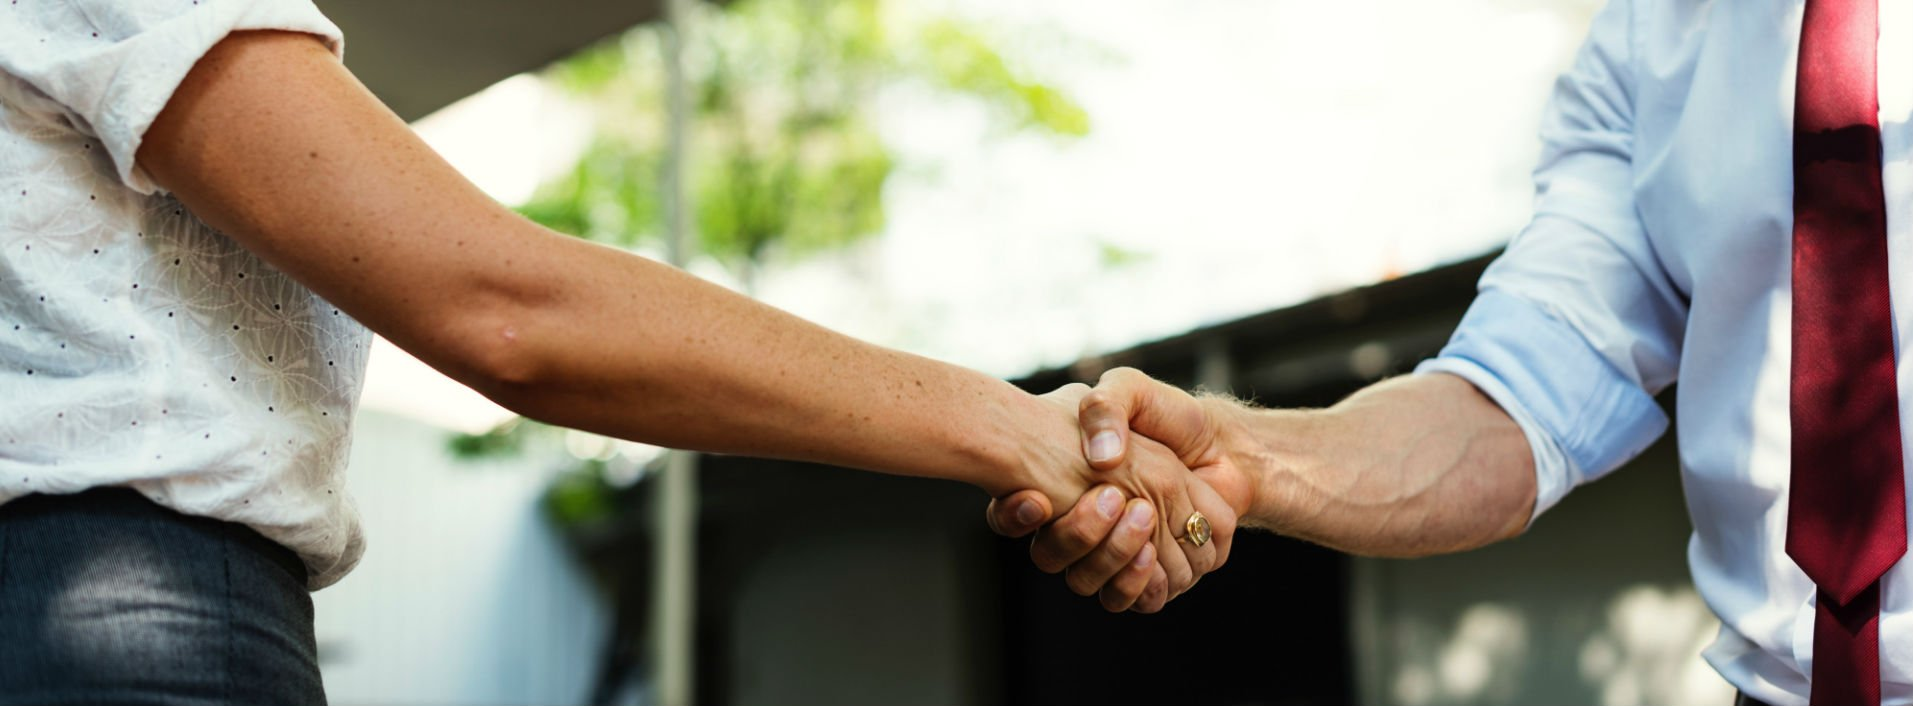 Degrees of Politeness in English- two men shaking hands in formal business attire